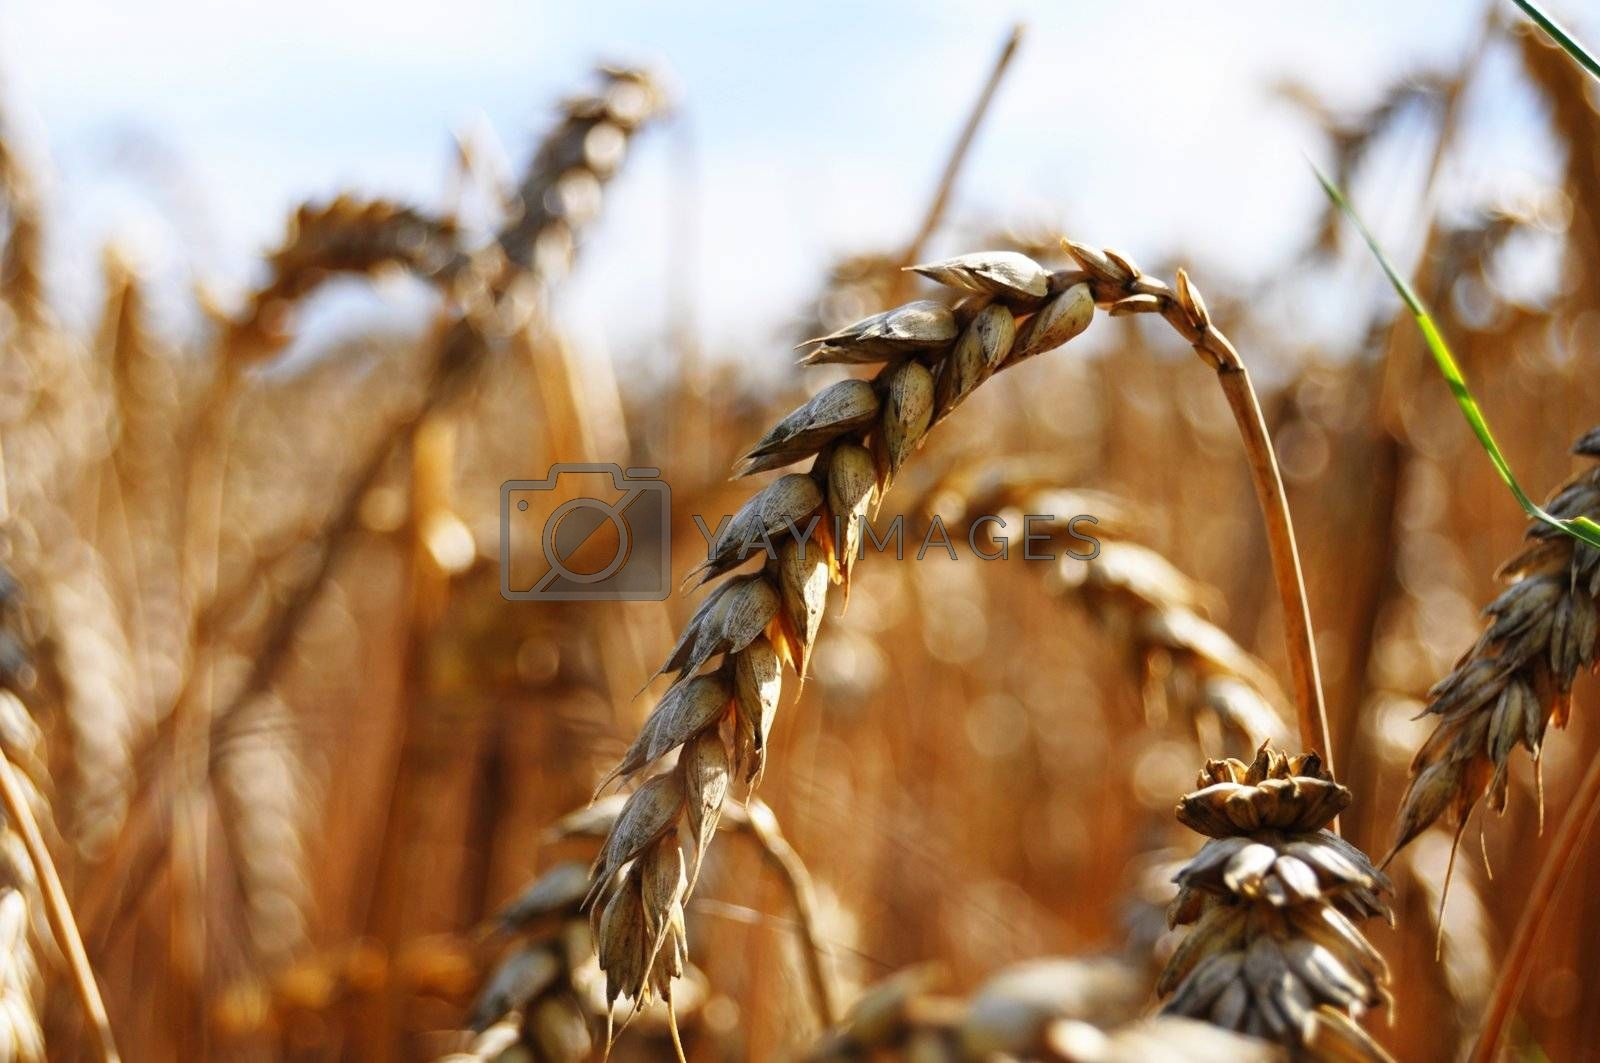 wheet grain on a summer field with sky showing food concept